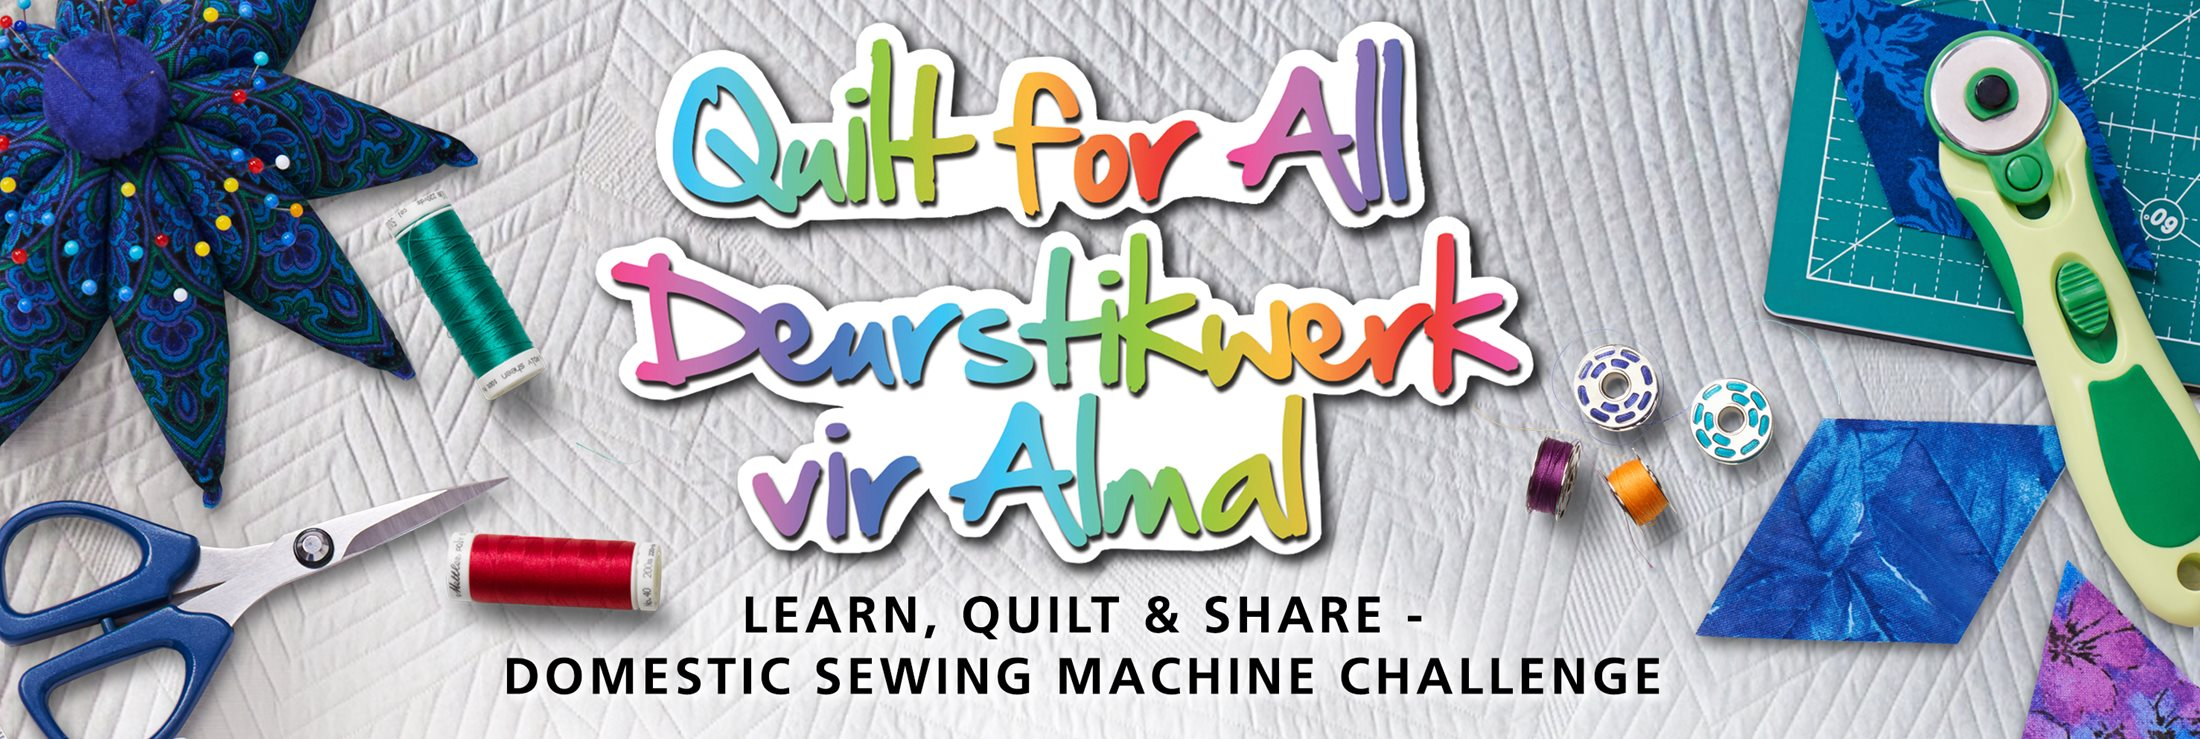 Picture: Sew Much Fun Sewing Machine Challenge